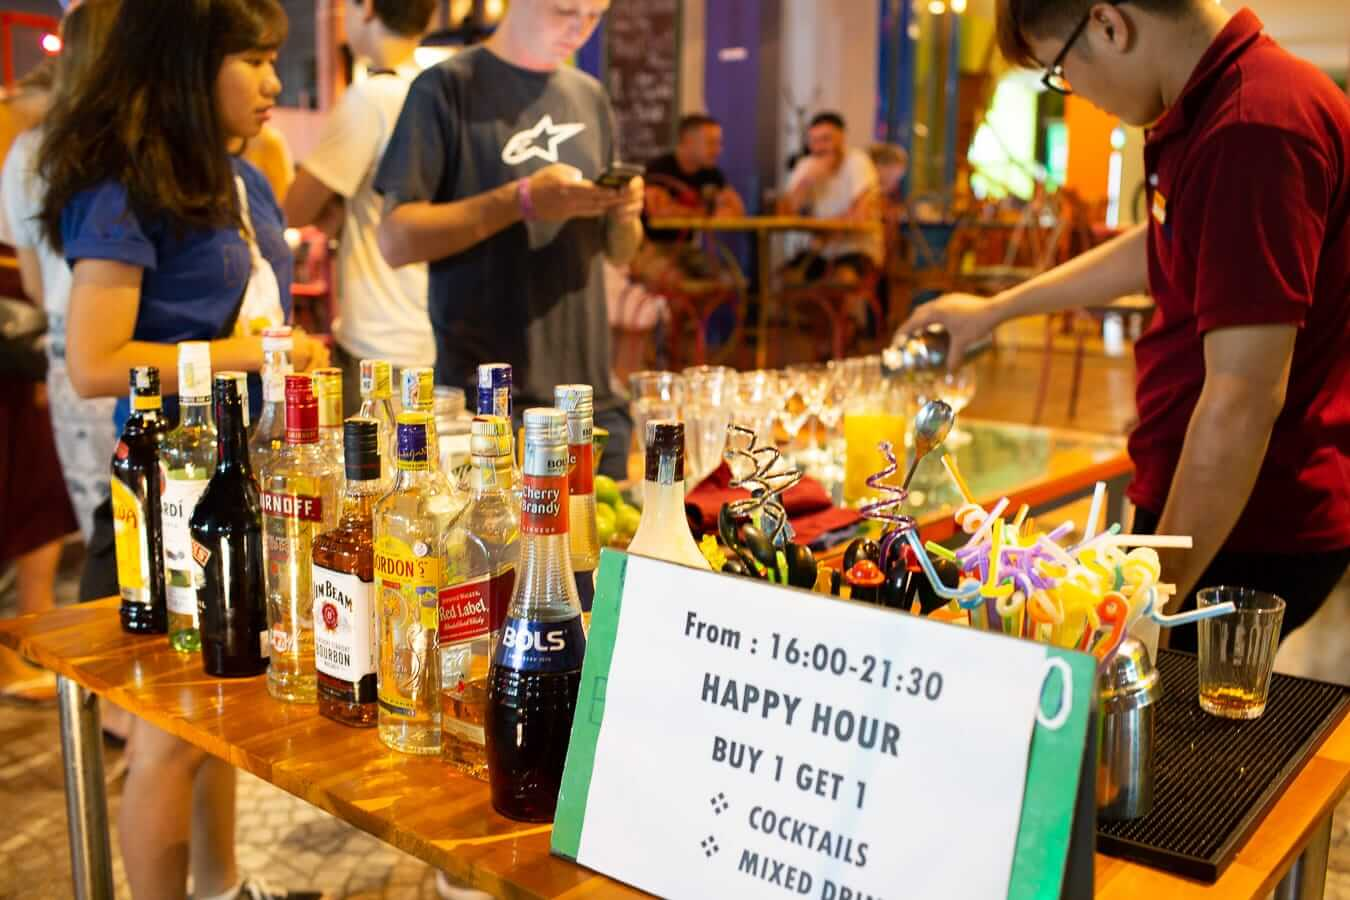 Happy hour at bars in Hoi An